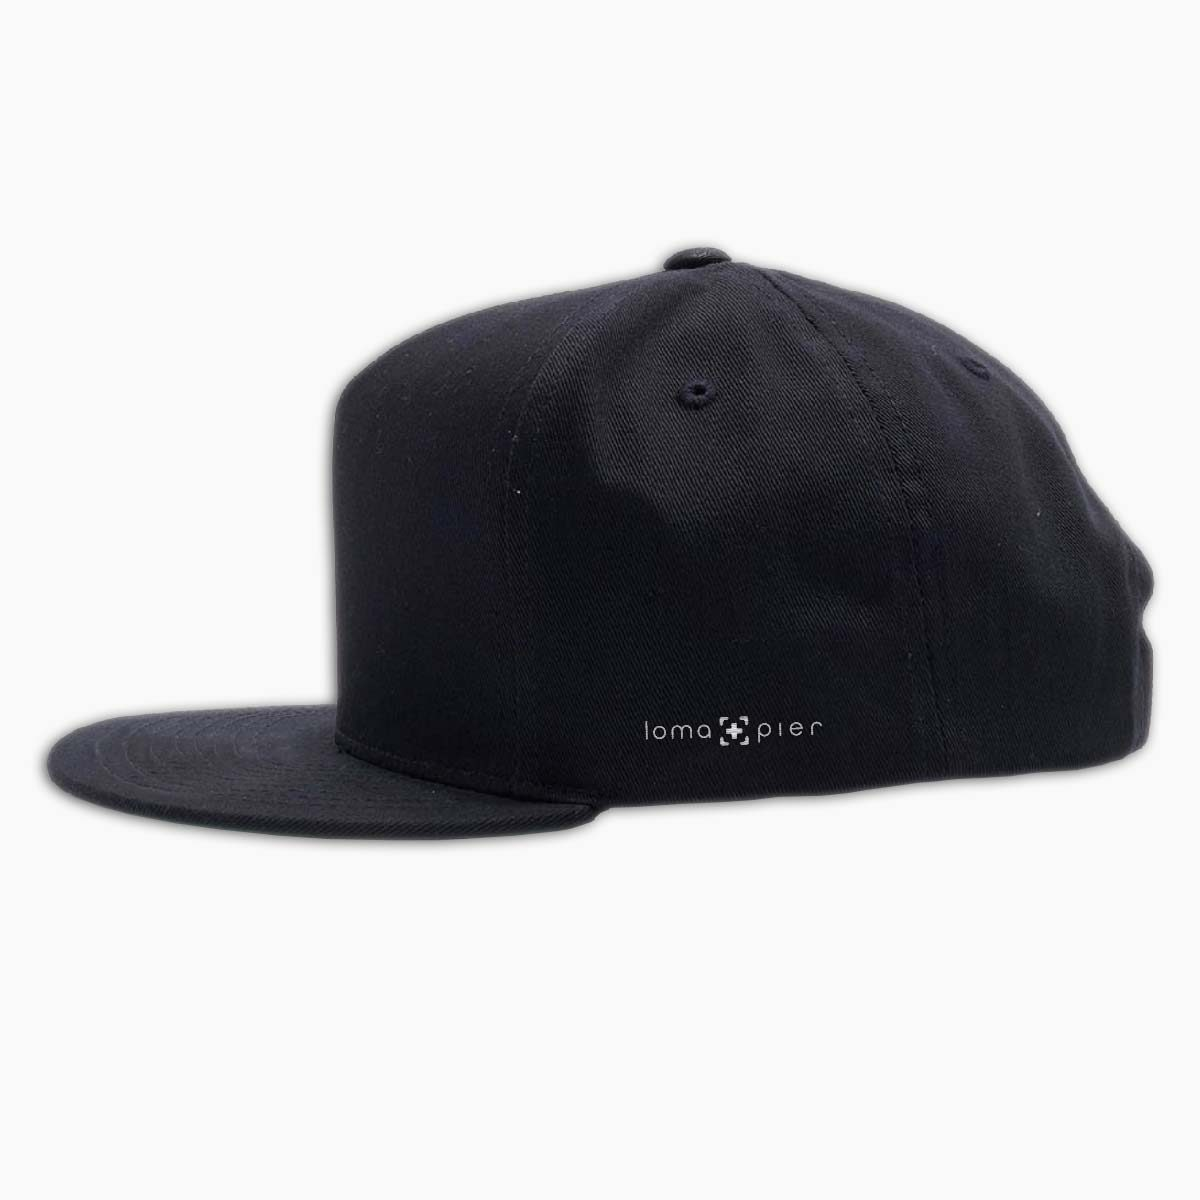 loma+pier left side logo on a black classic snapback hat with white thread by loma+pier hat store